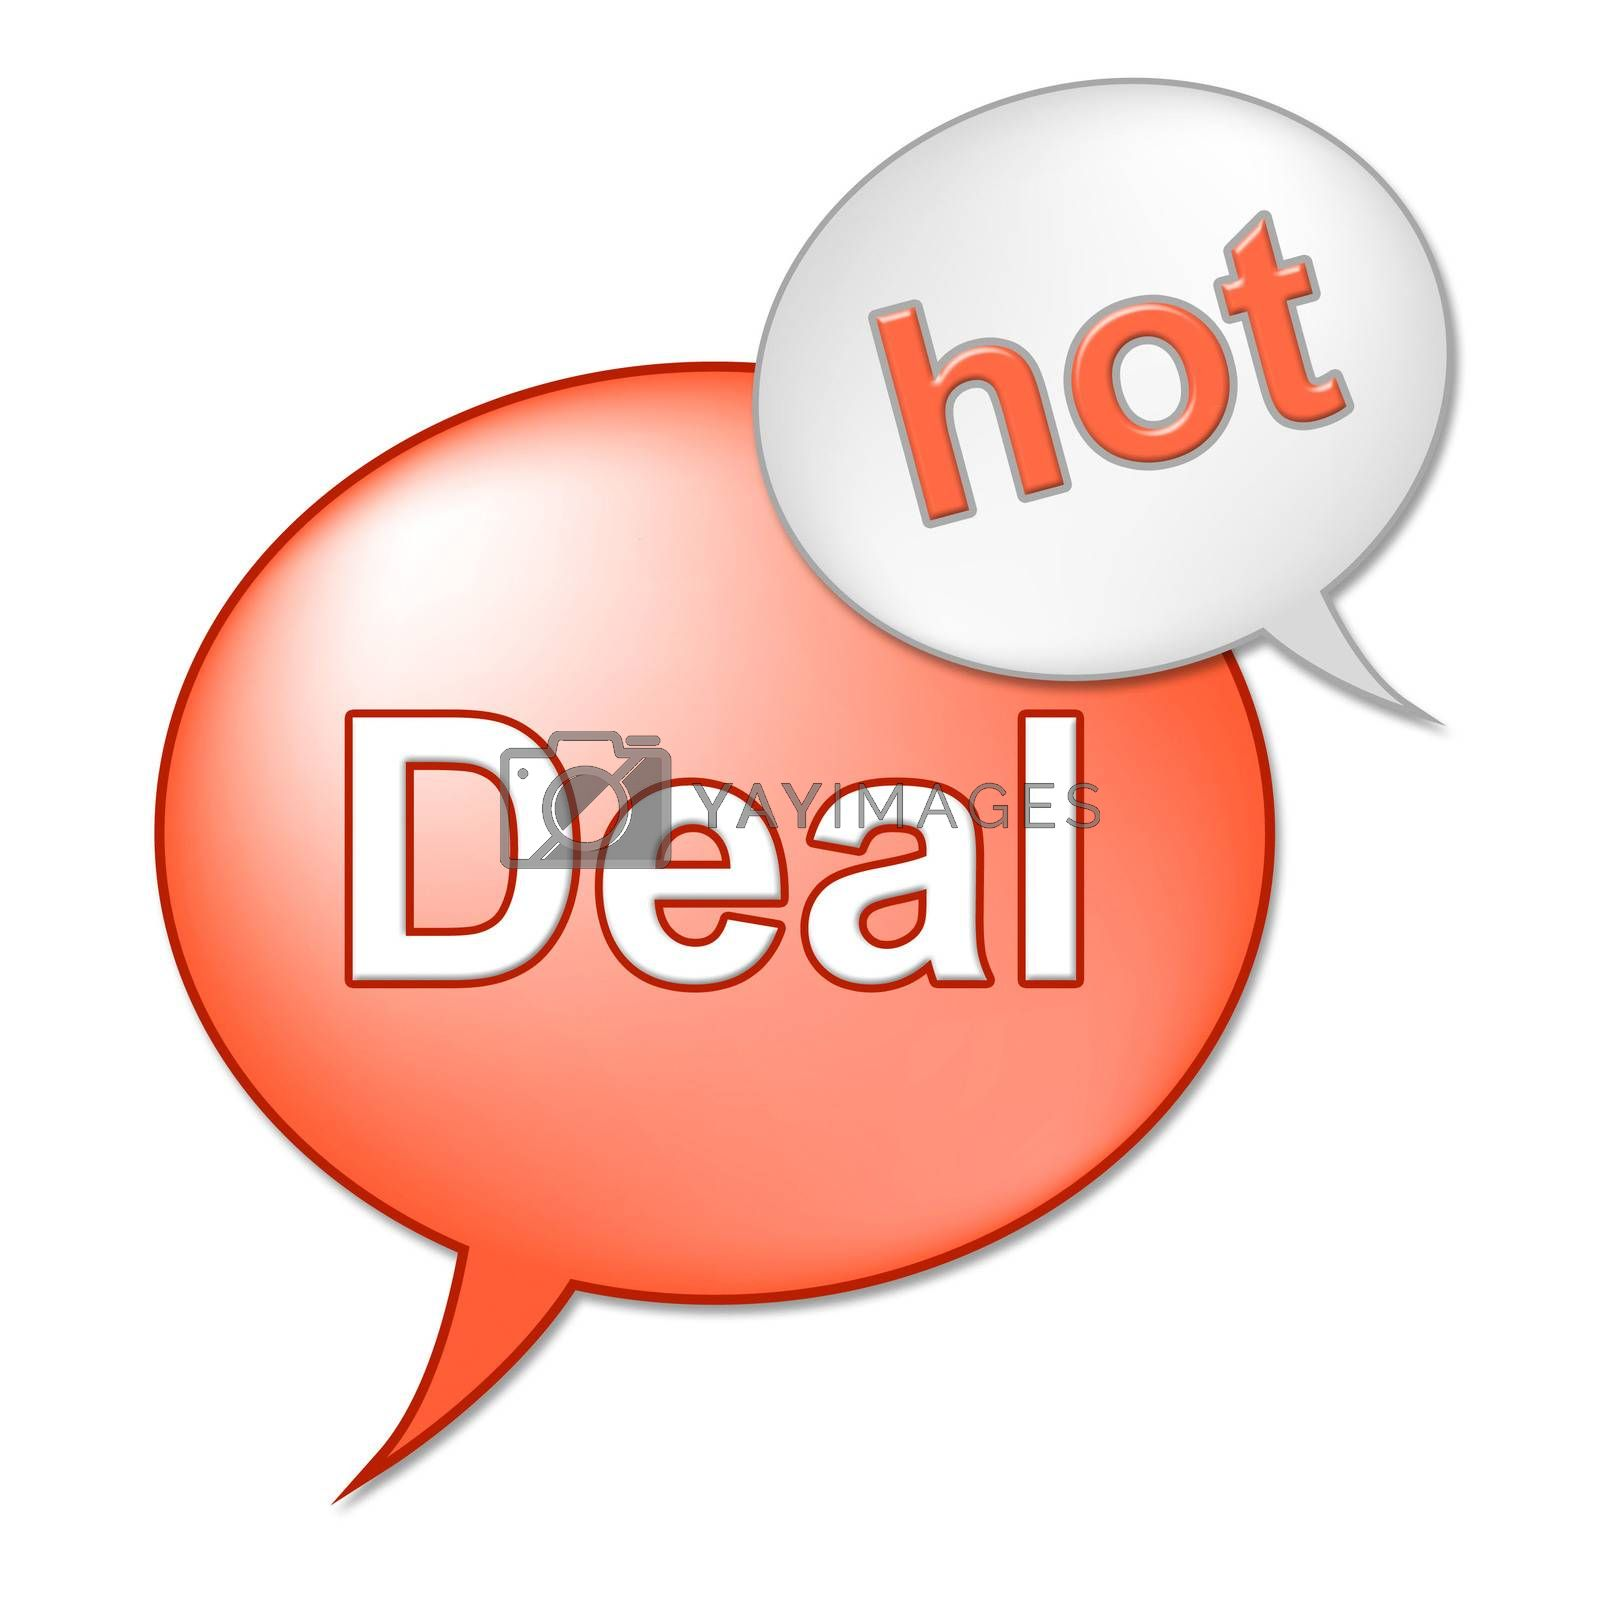 Hot Deal Message Indicates Best Price And Business by stuartmiles